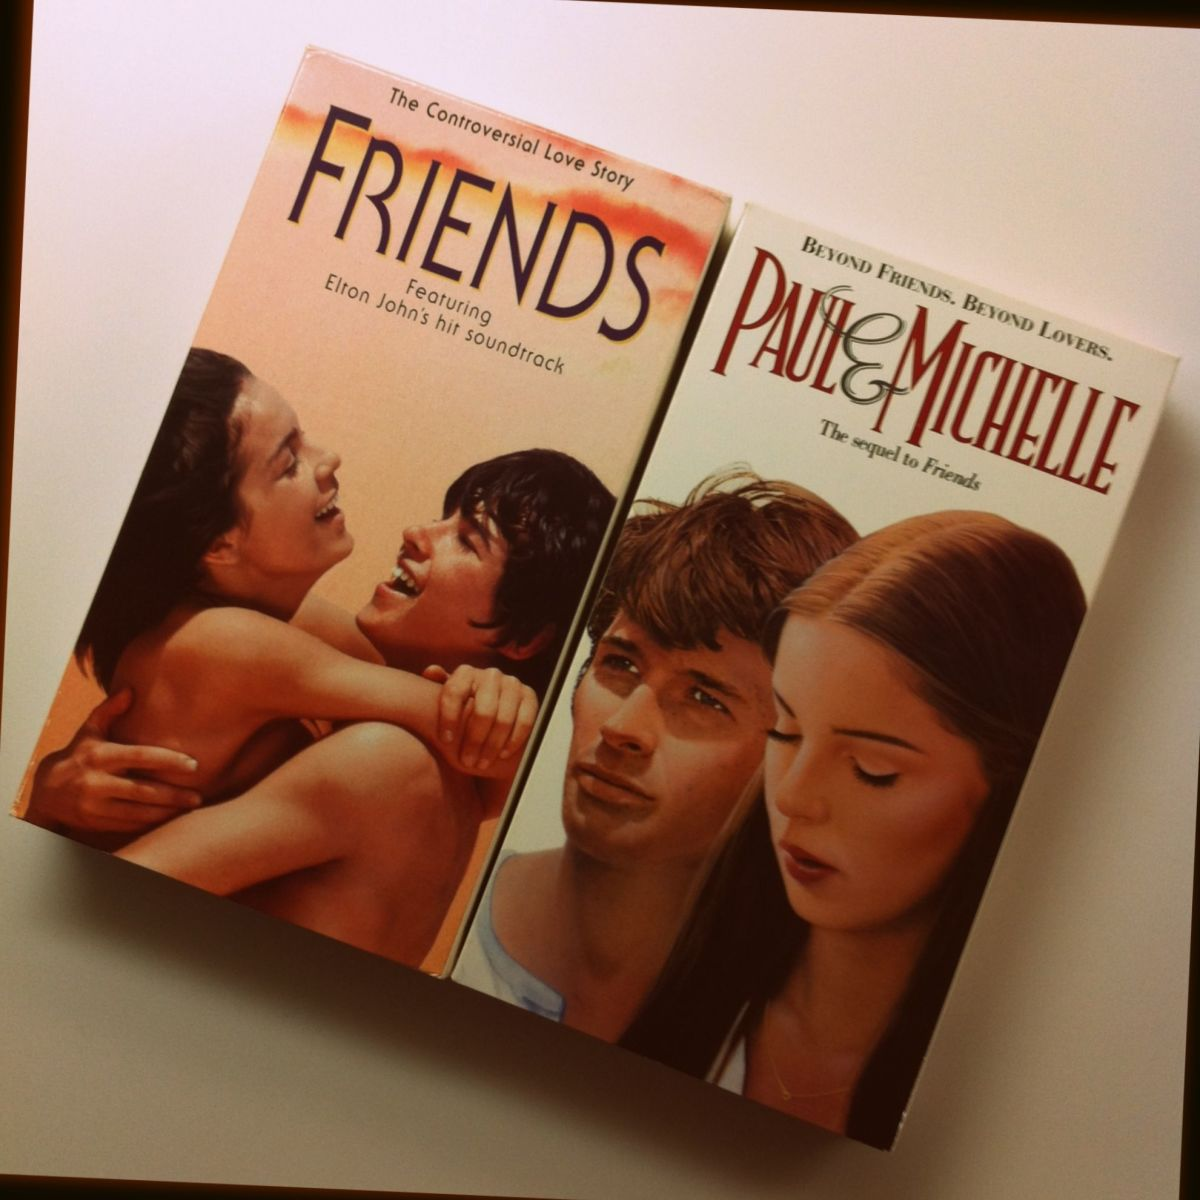 My VHS copies of 'Friends' and 'Paul and Michelle'